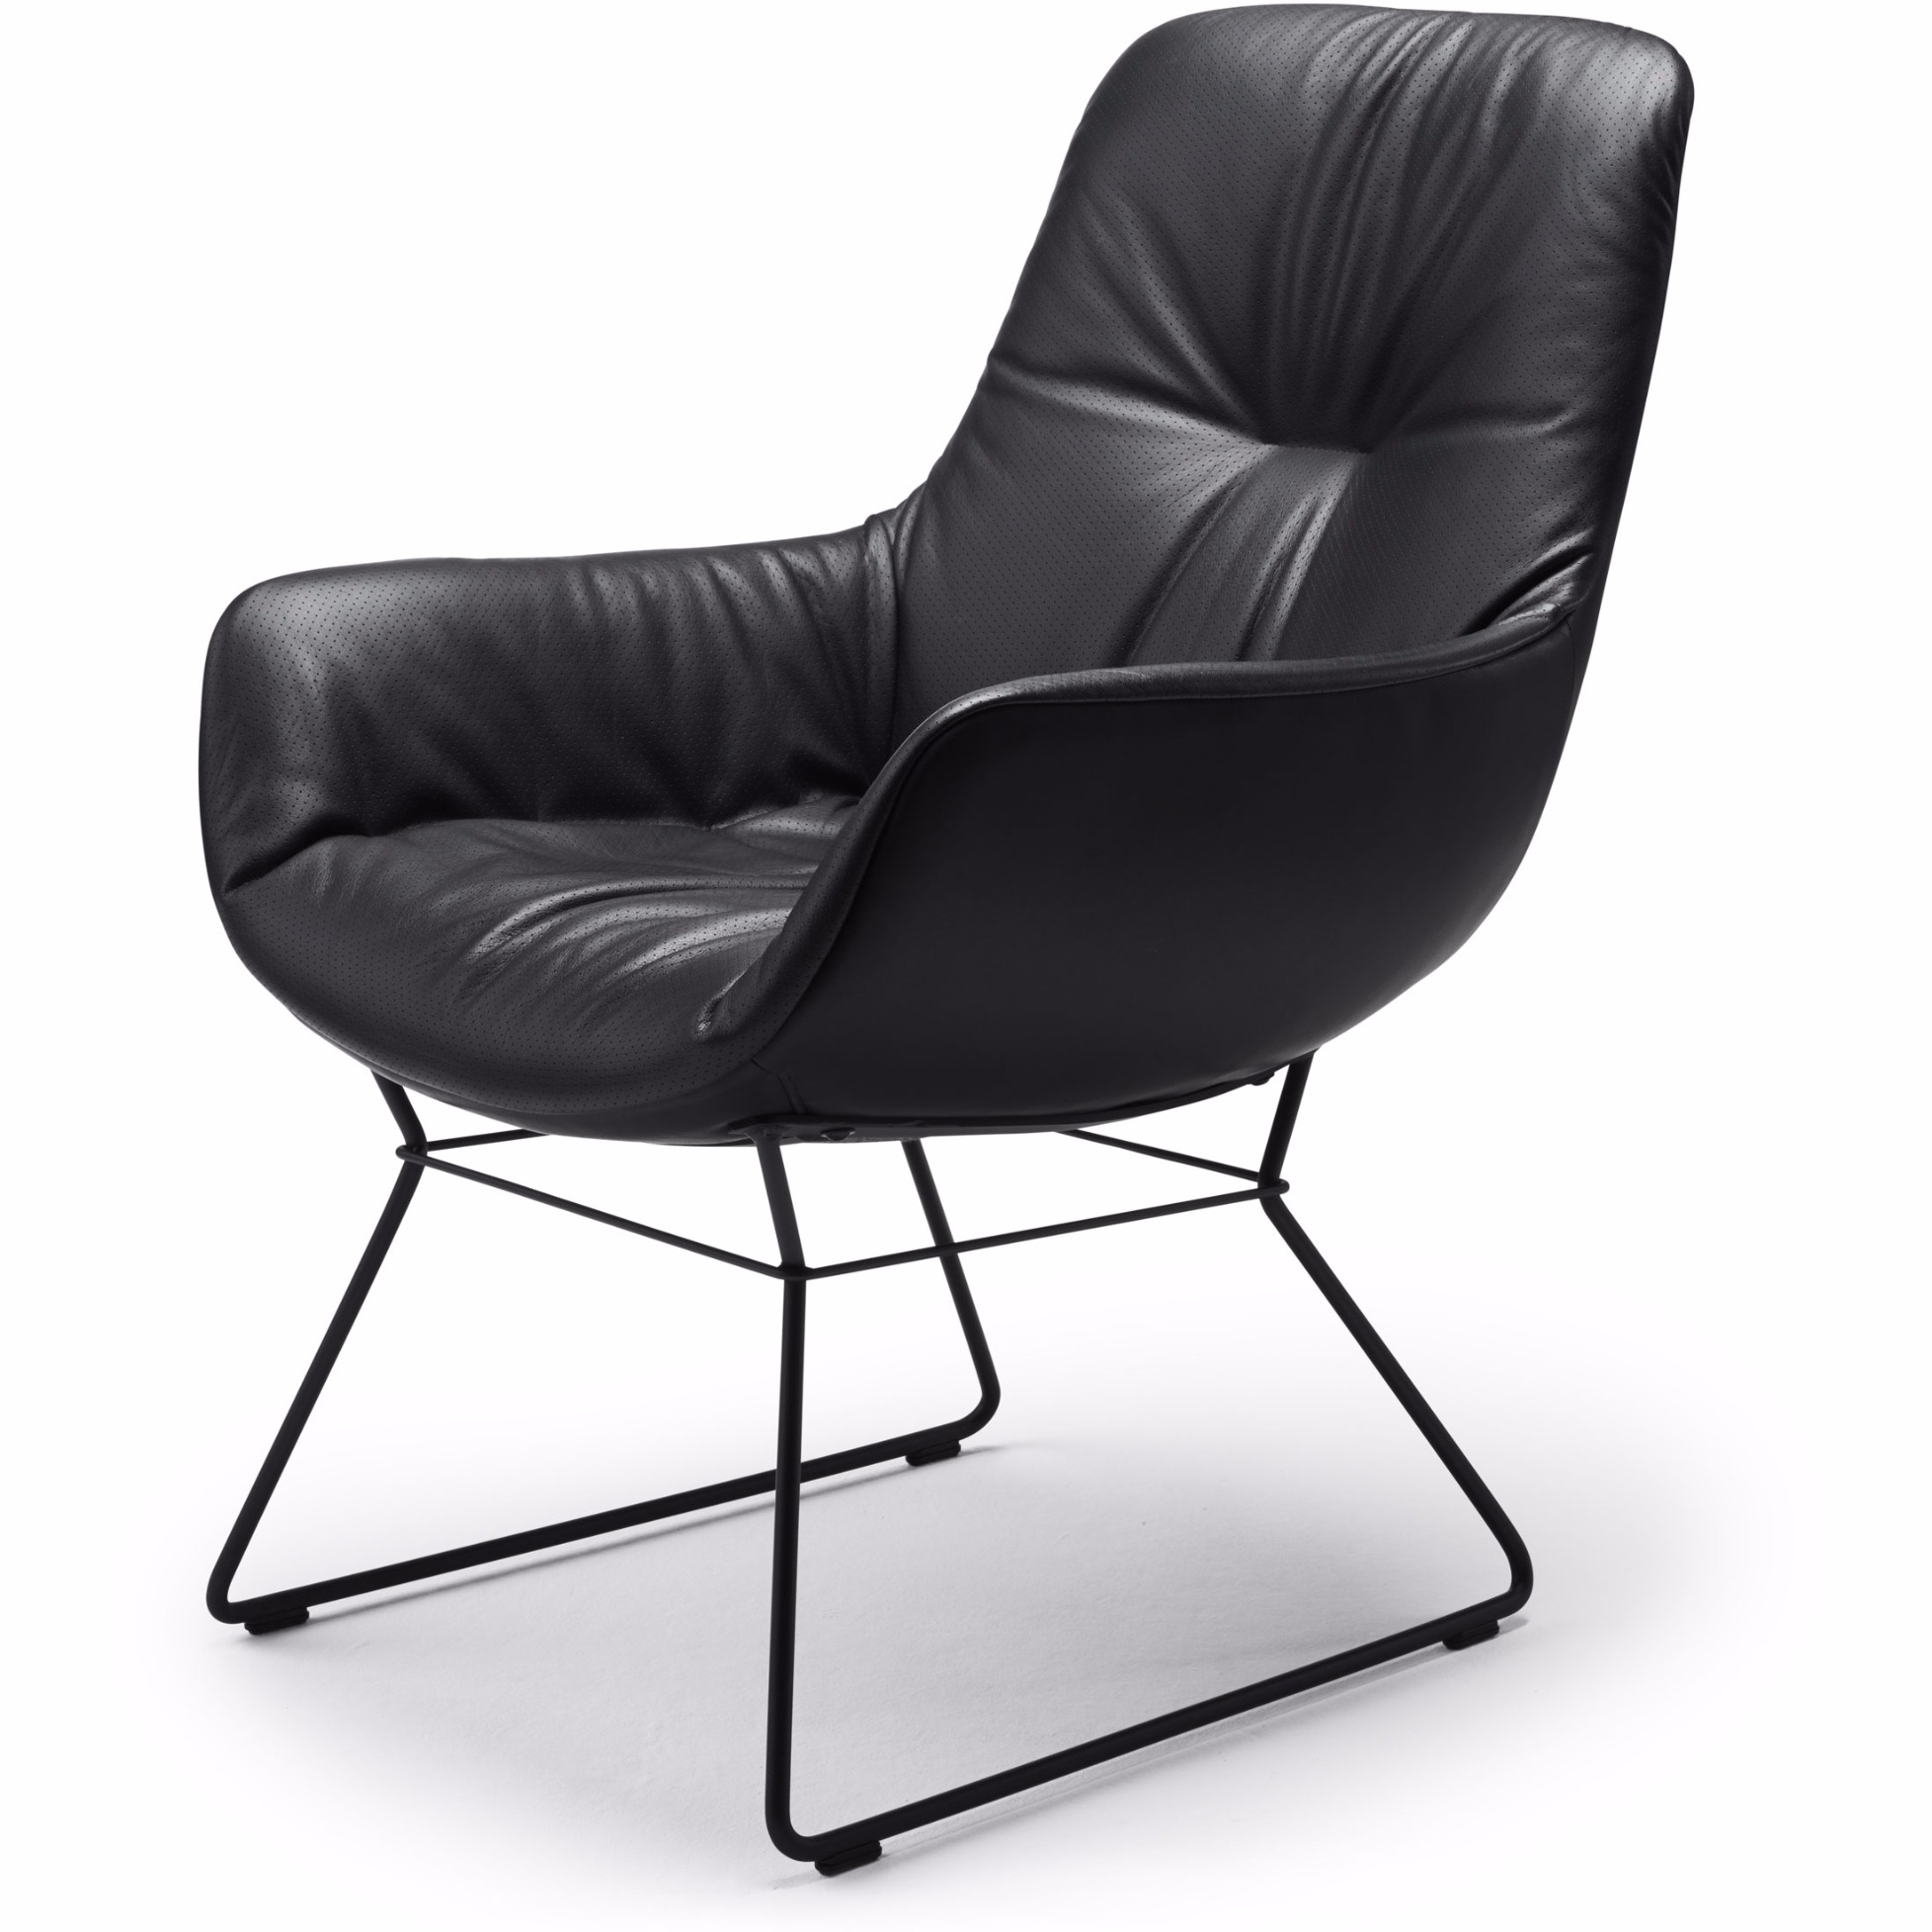 Freifrau Sessel Leya Leya Cocktail Lounge Chair Von Freifrau